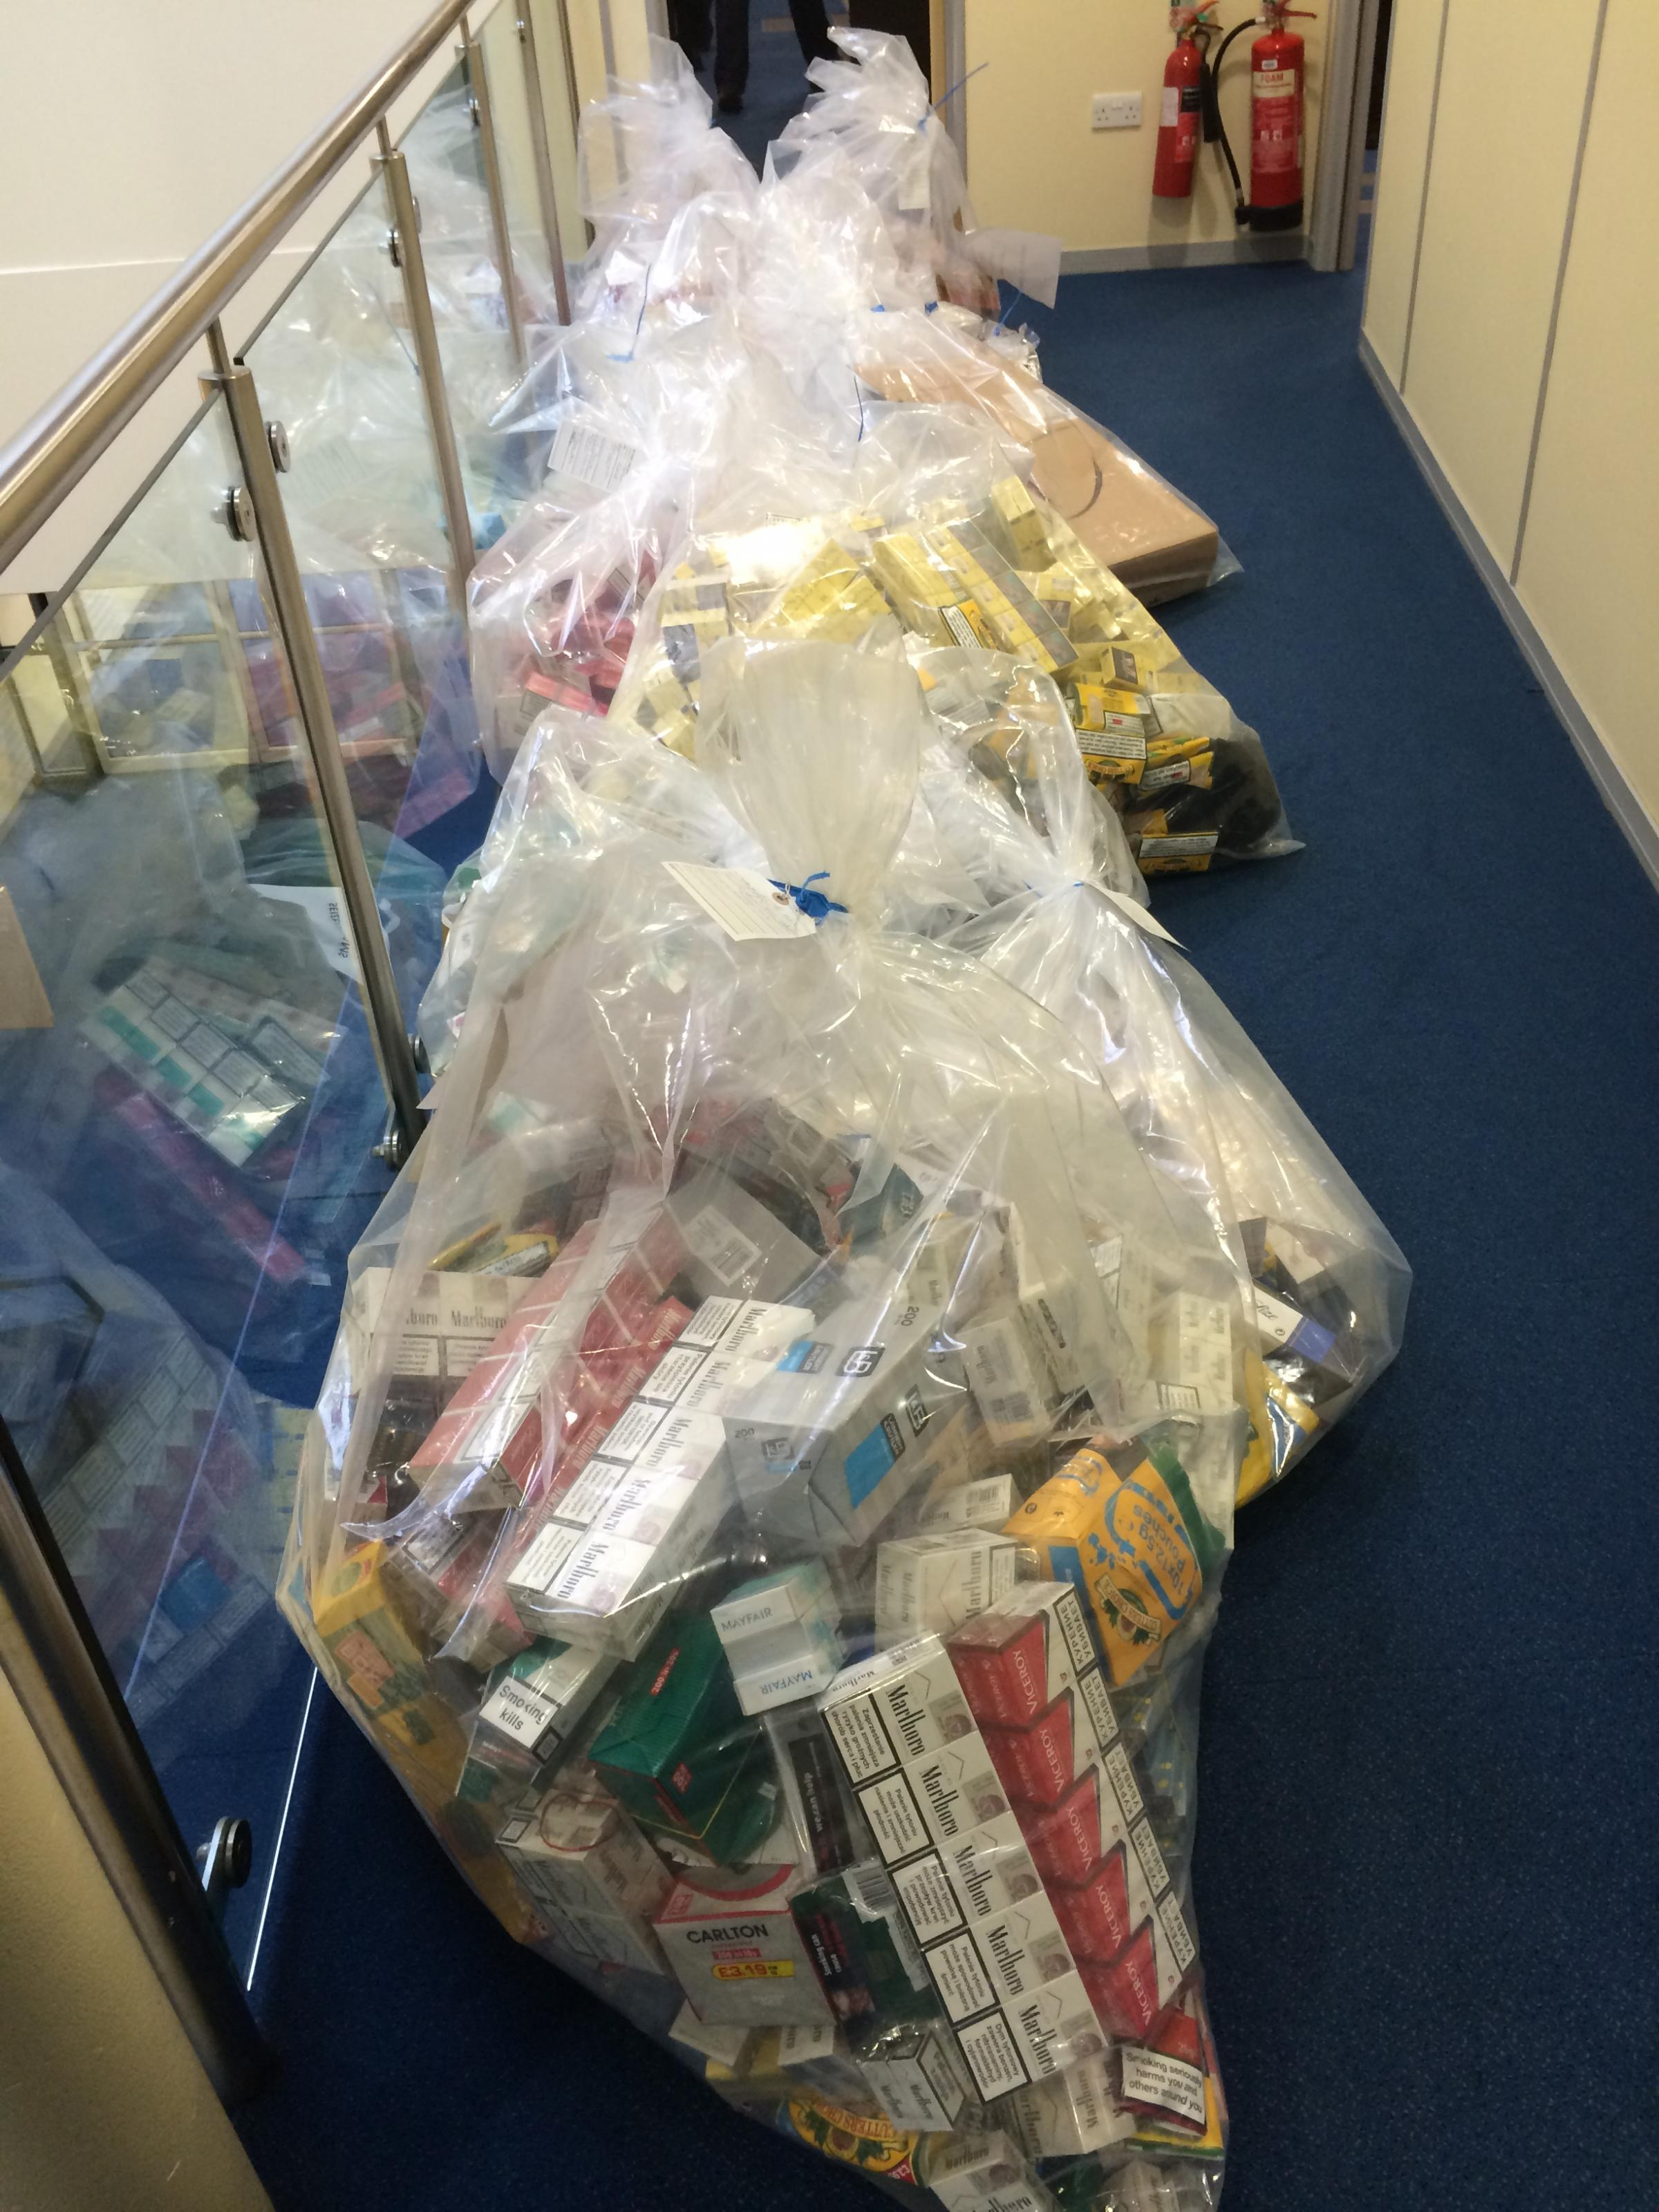 Some of the illegal tobacco seized yesterday